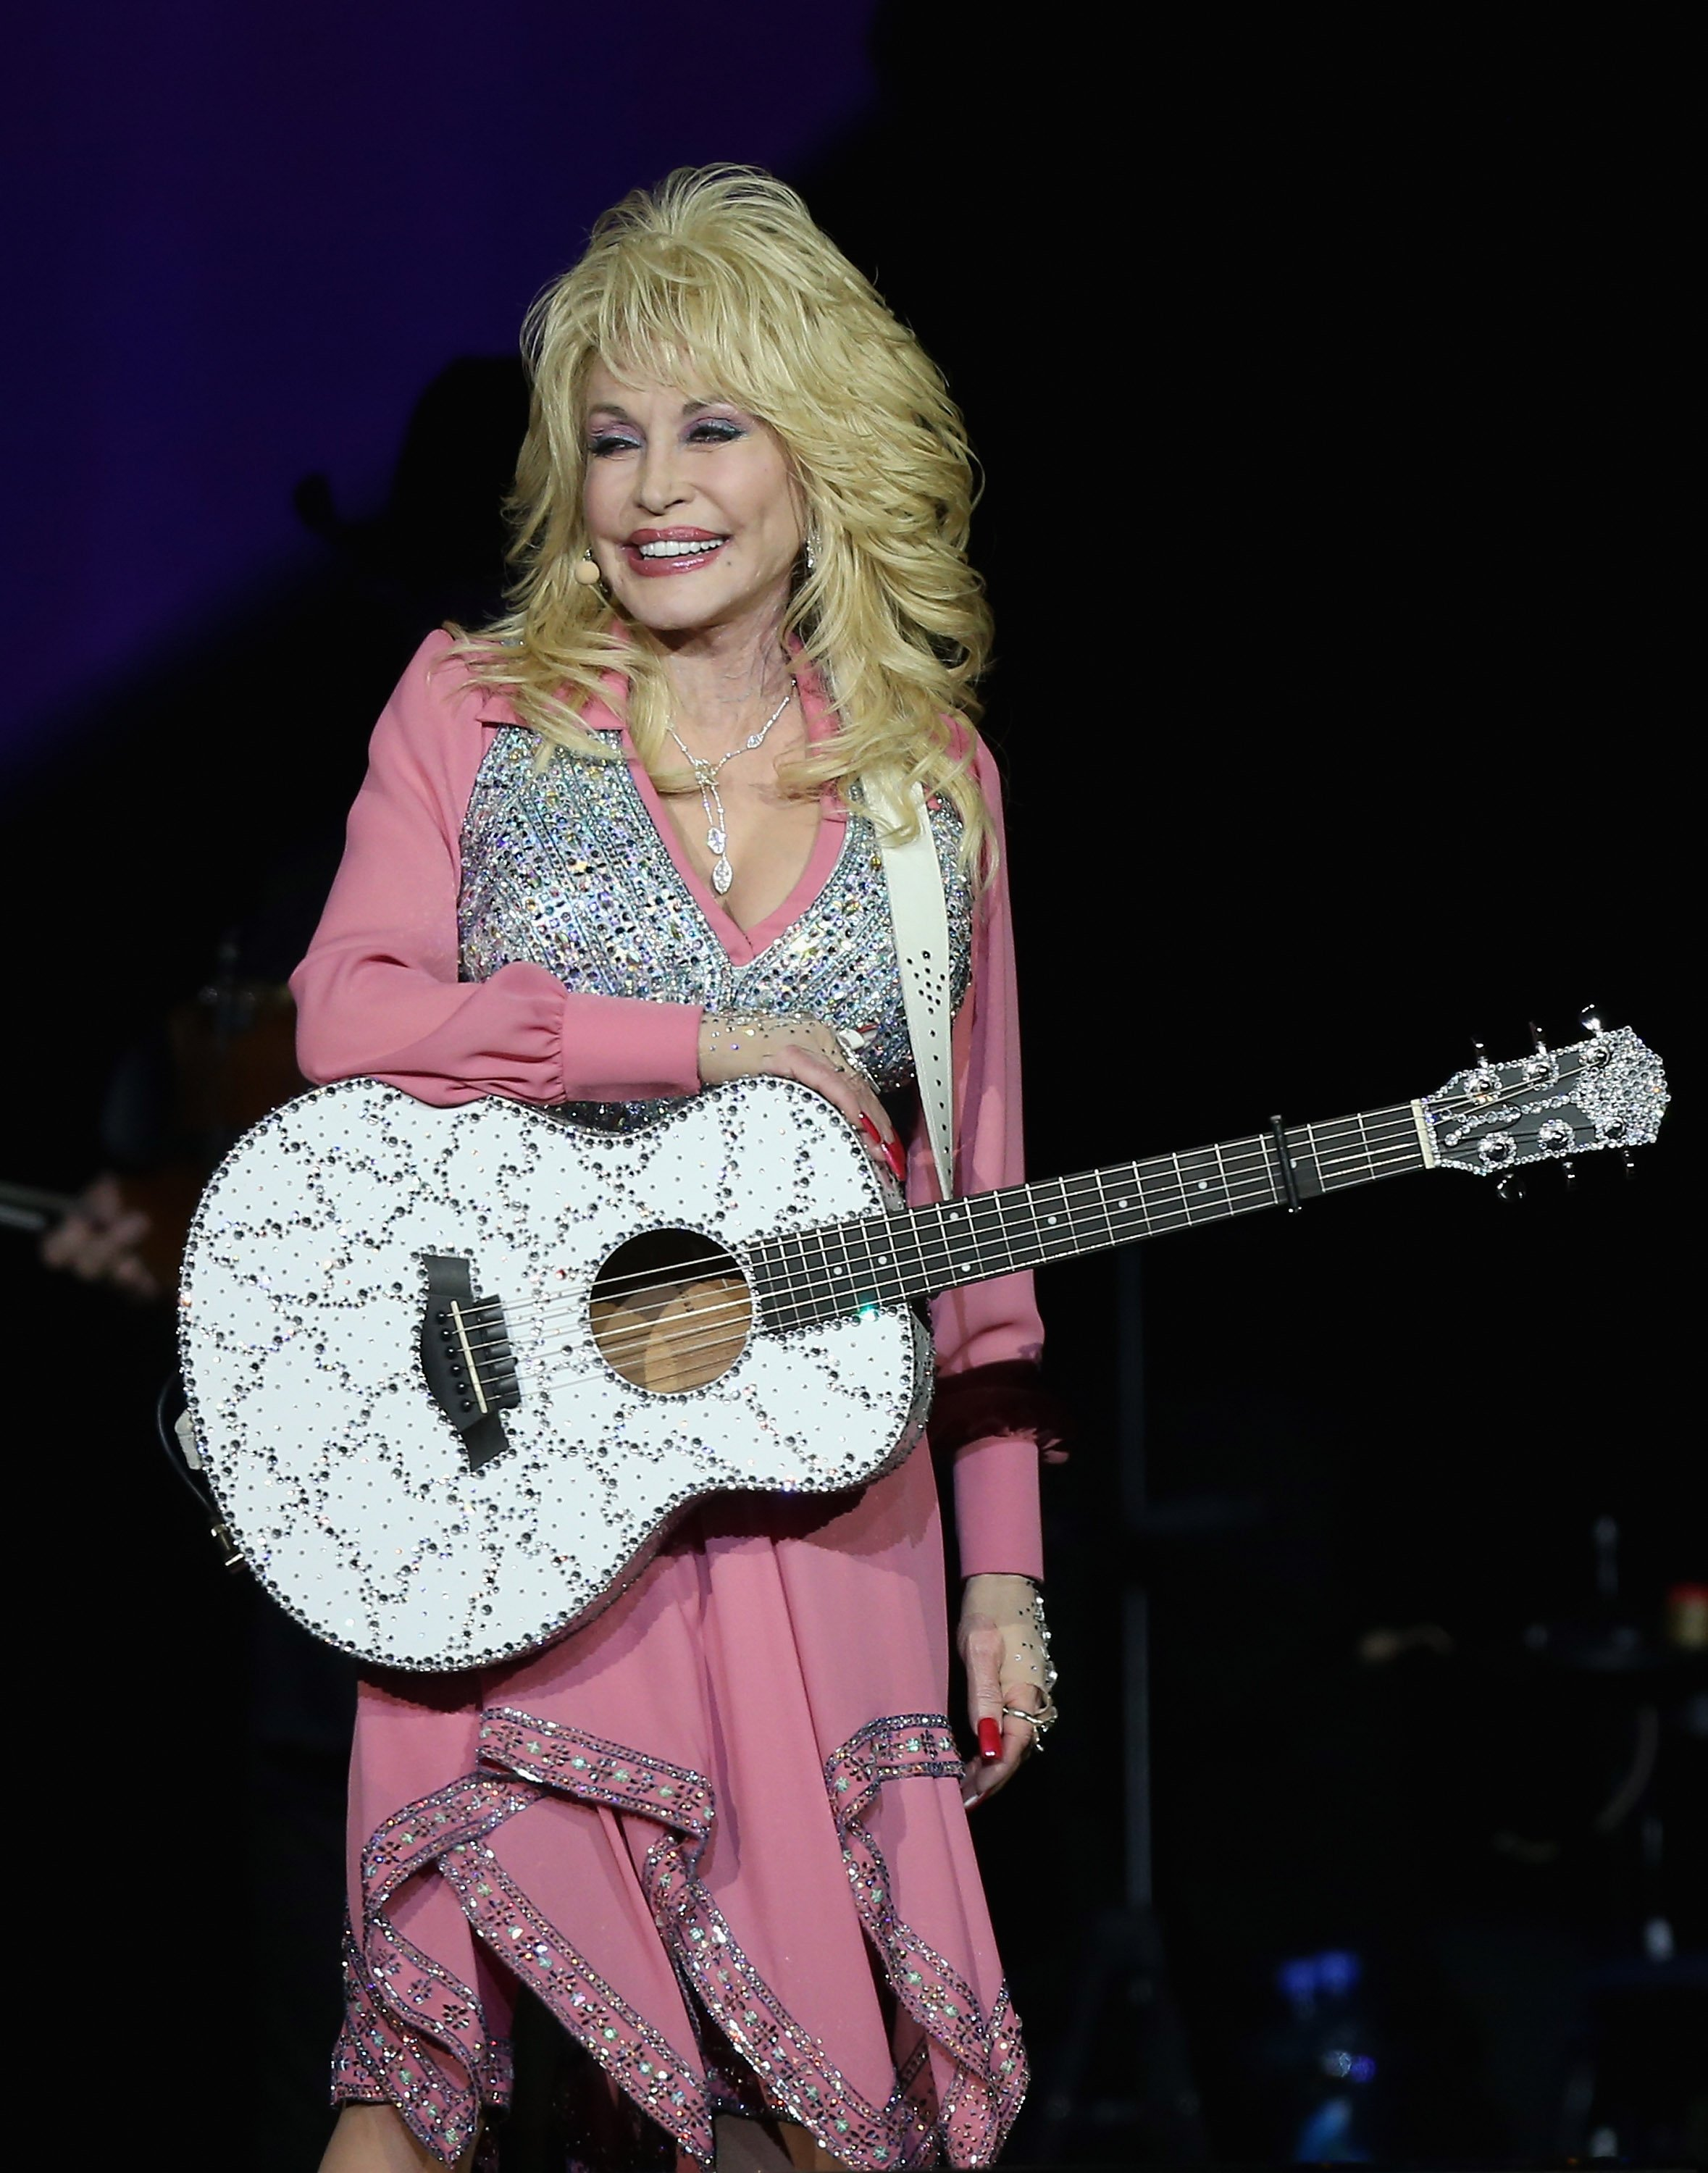 Dolly Parton performs live for fans at Vector Arena on February 7, 2014.   Source: Getty Images